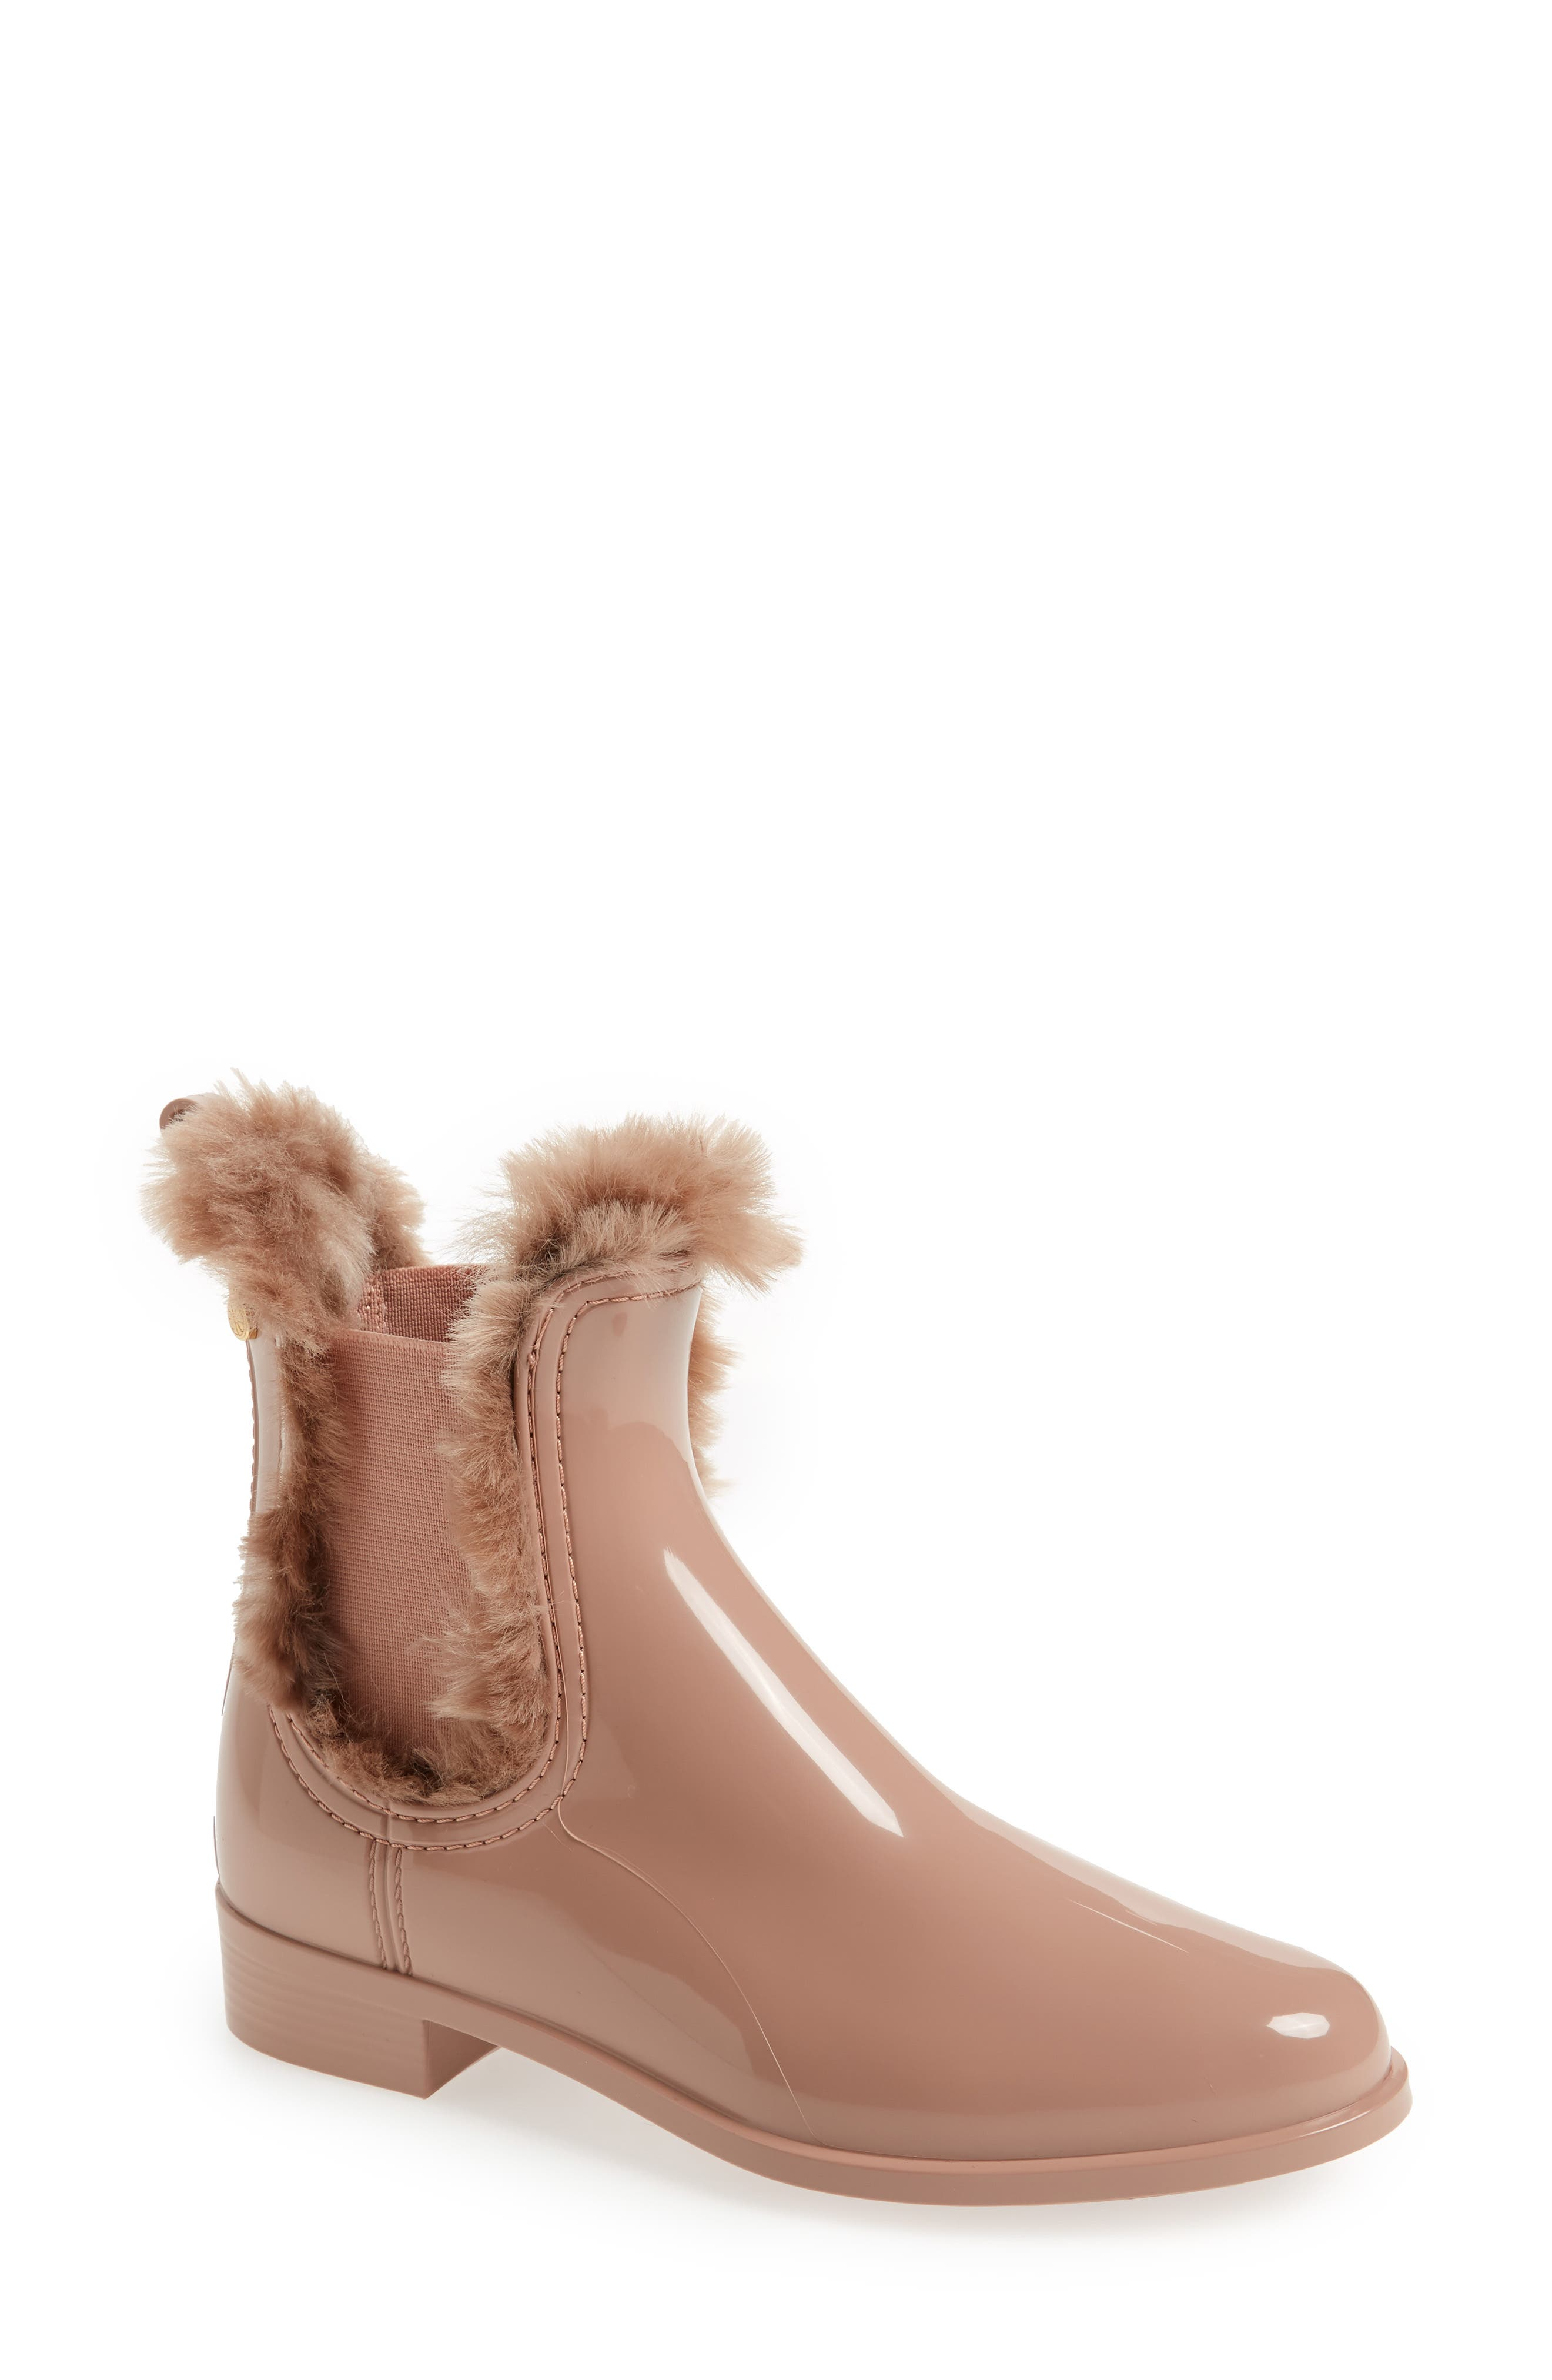 Lemon Jelly Aisha Waterproof Chelsea Boot with Faux Fur Lining (Women)